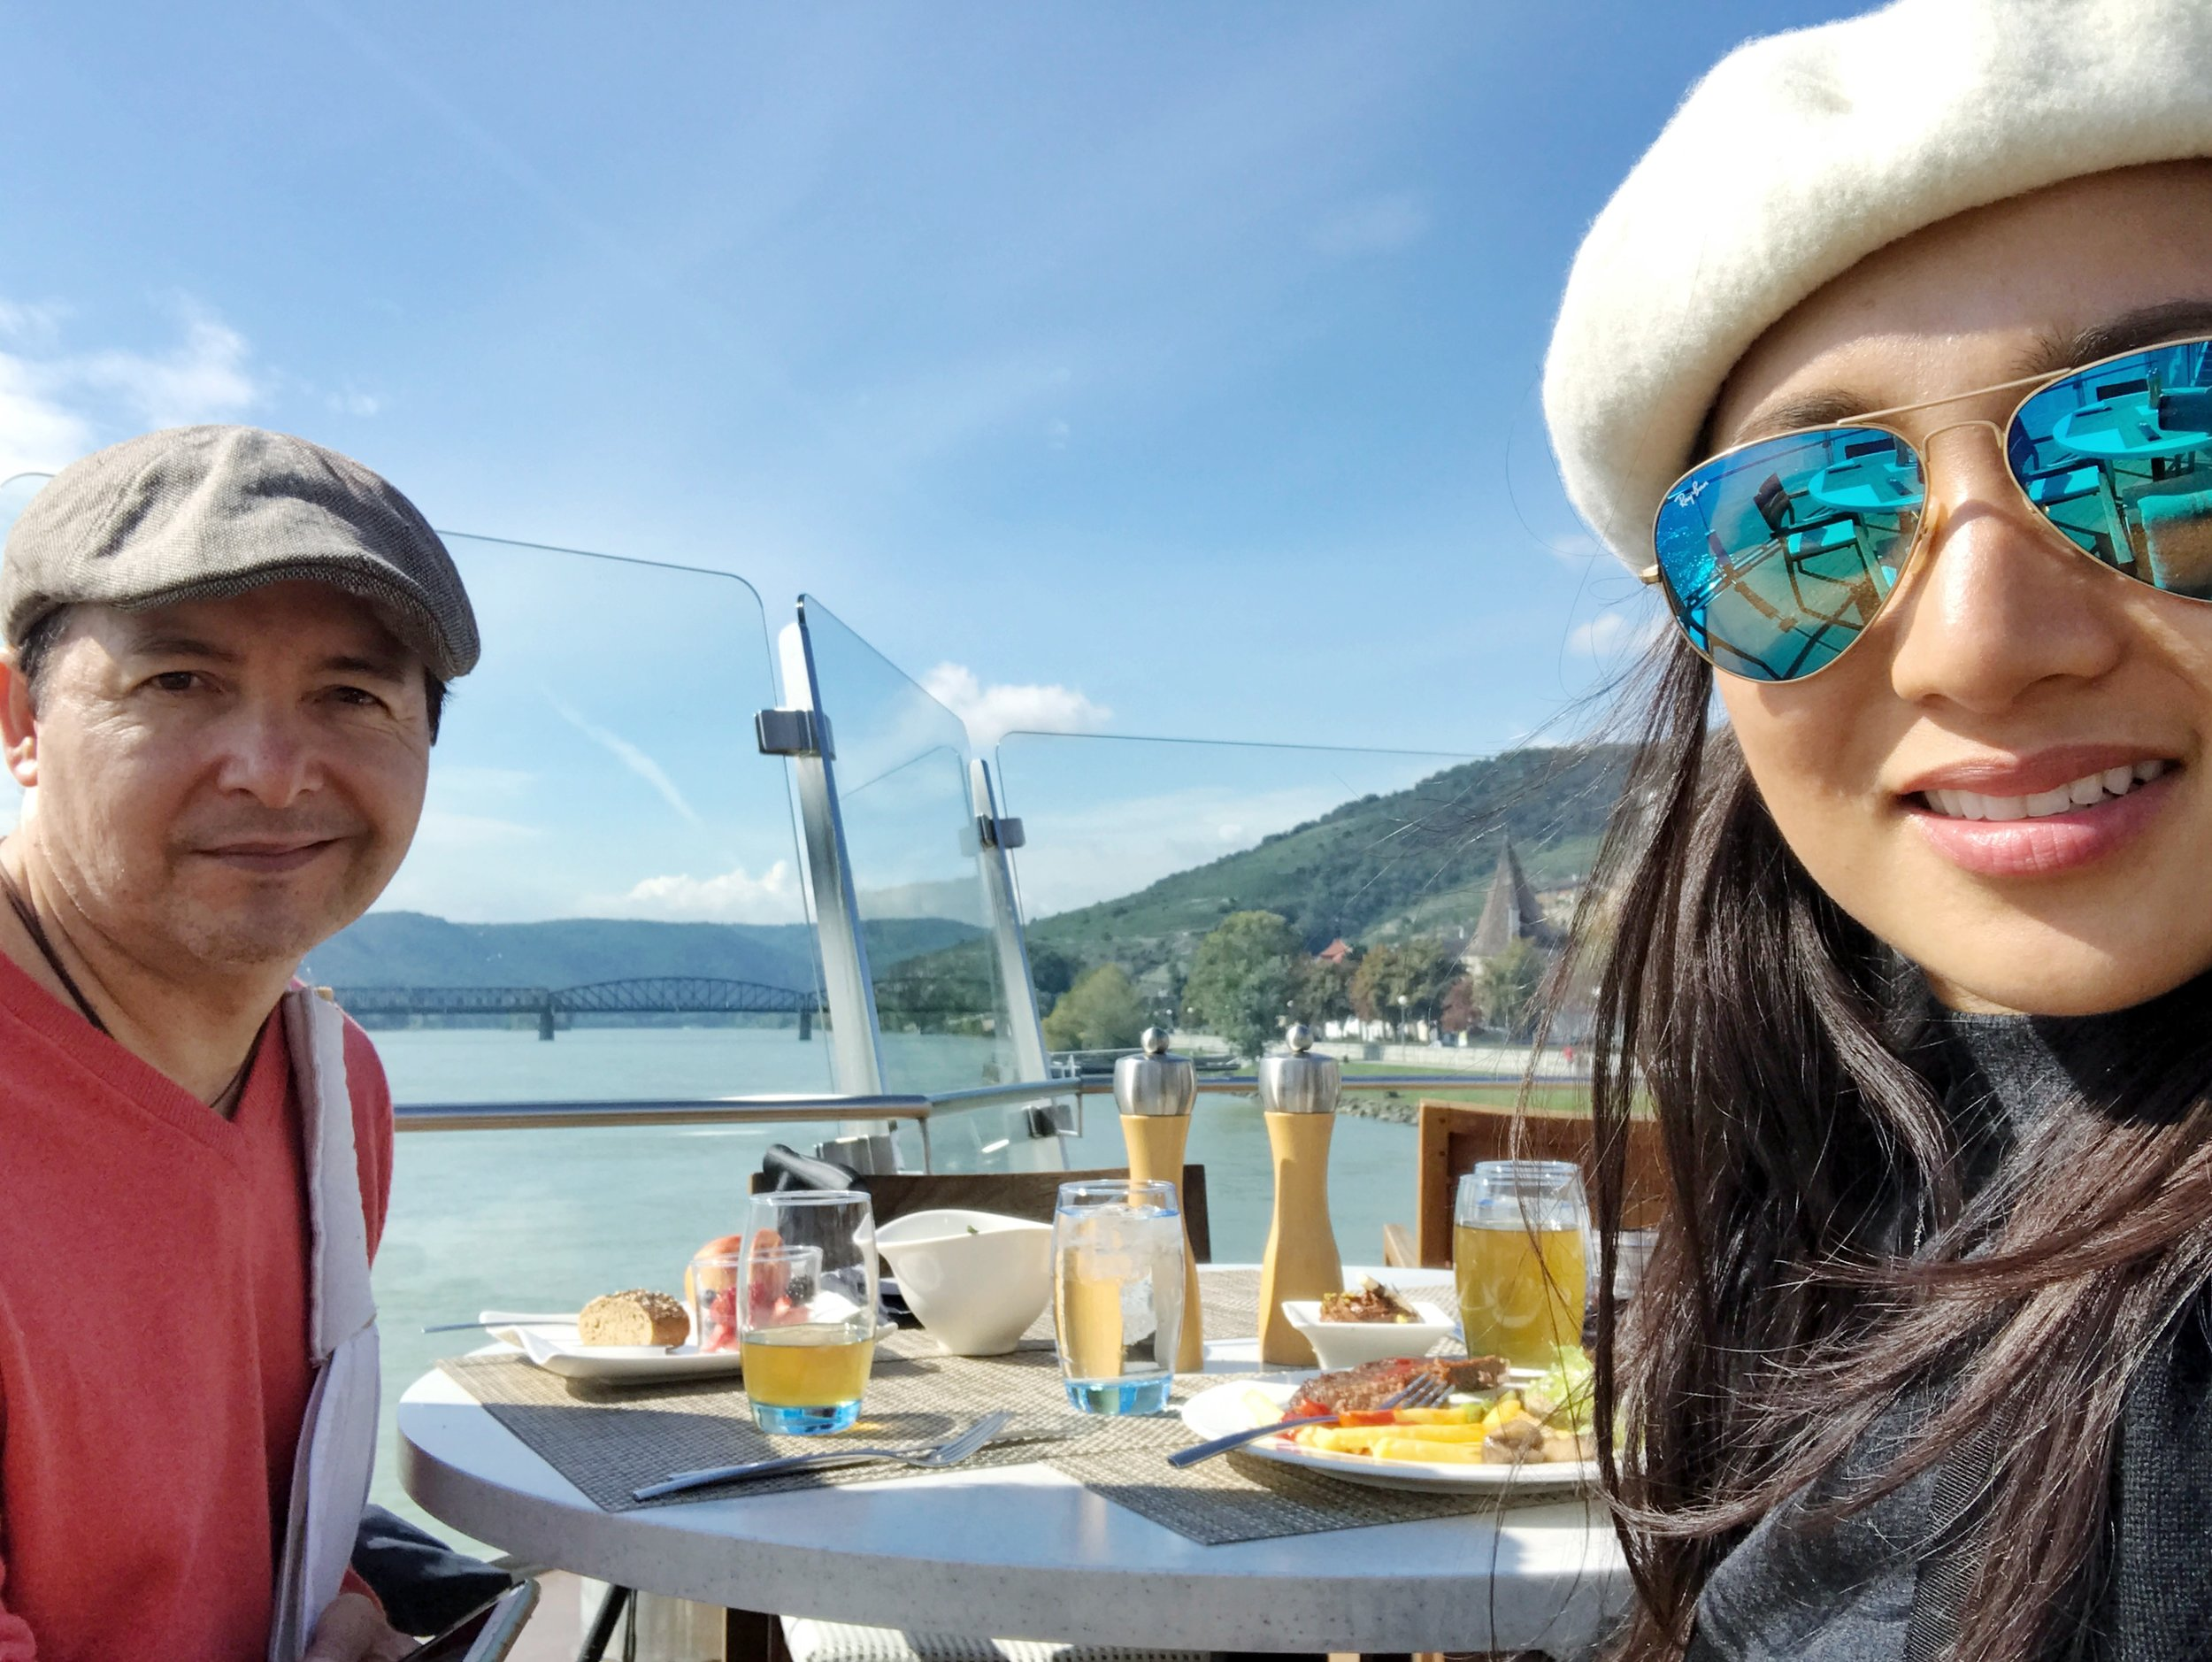 Since we missed the scenic Danube Bend from the terrace, we were not going to miss the scenic Wachau Valley.